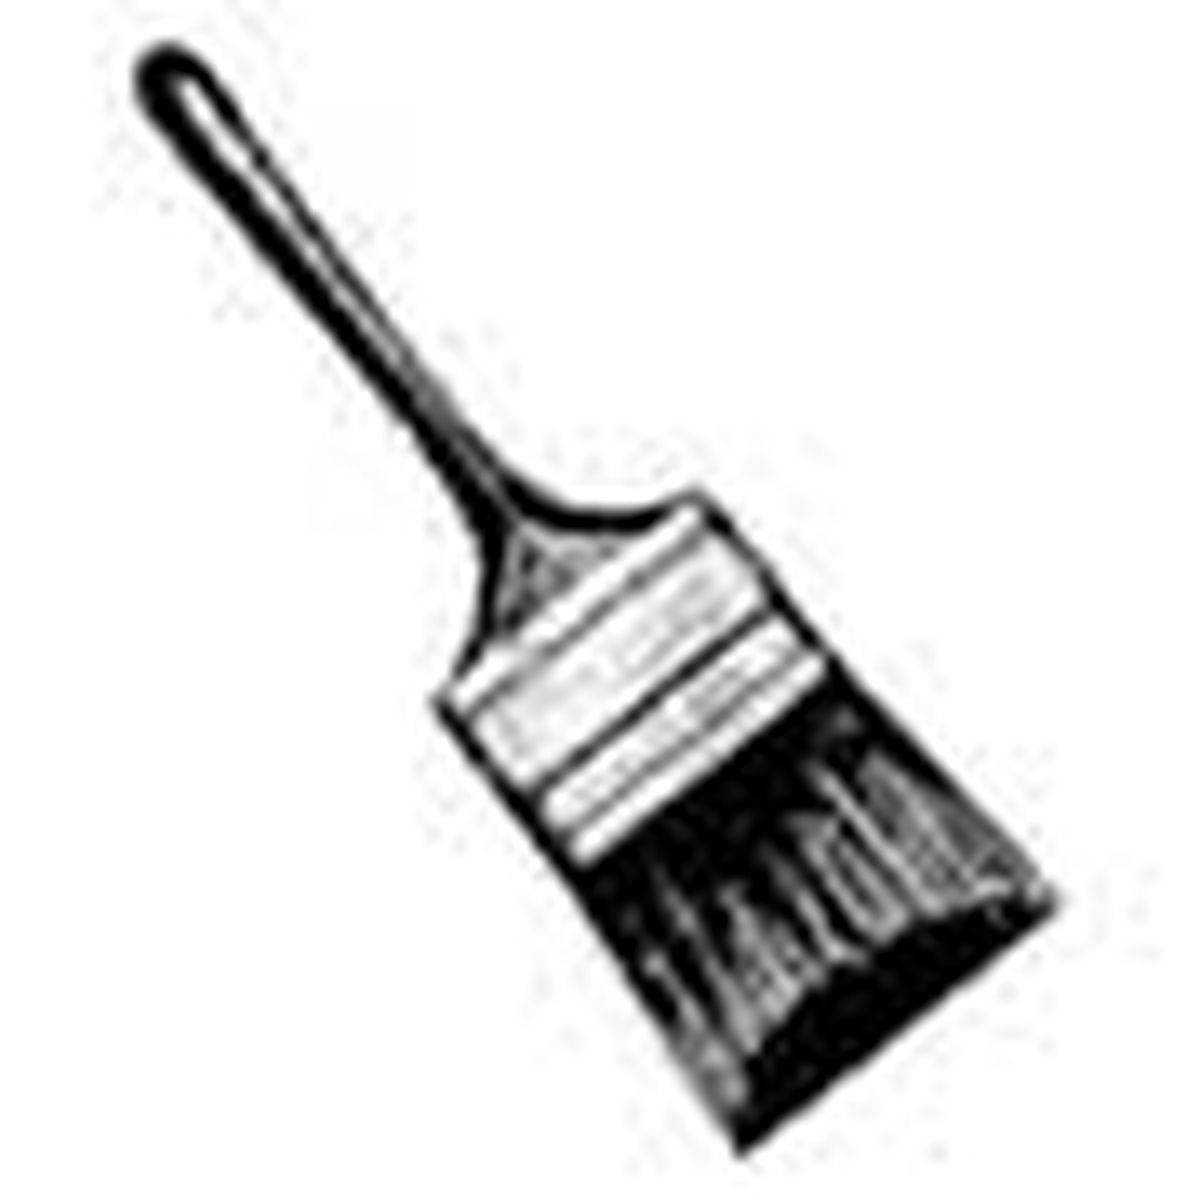 3-inch wide paint brush